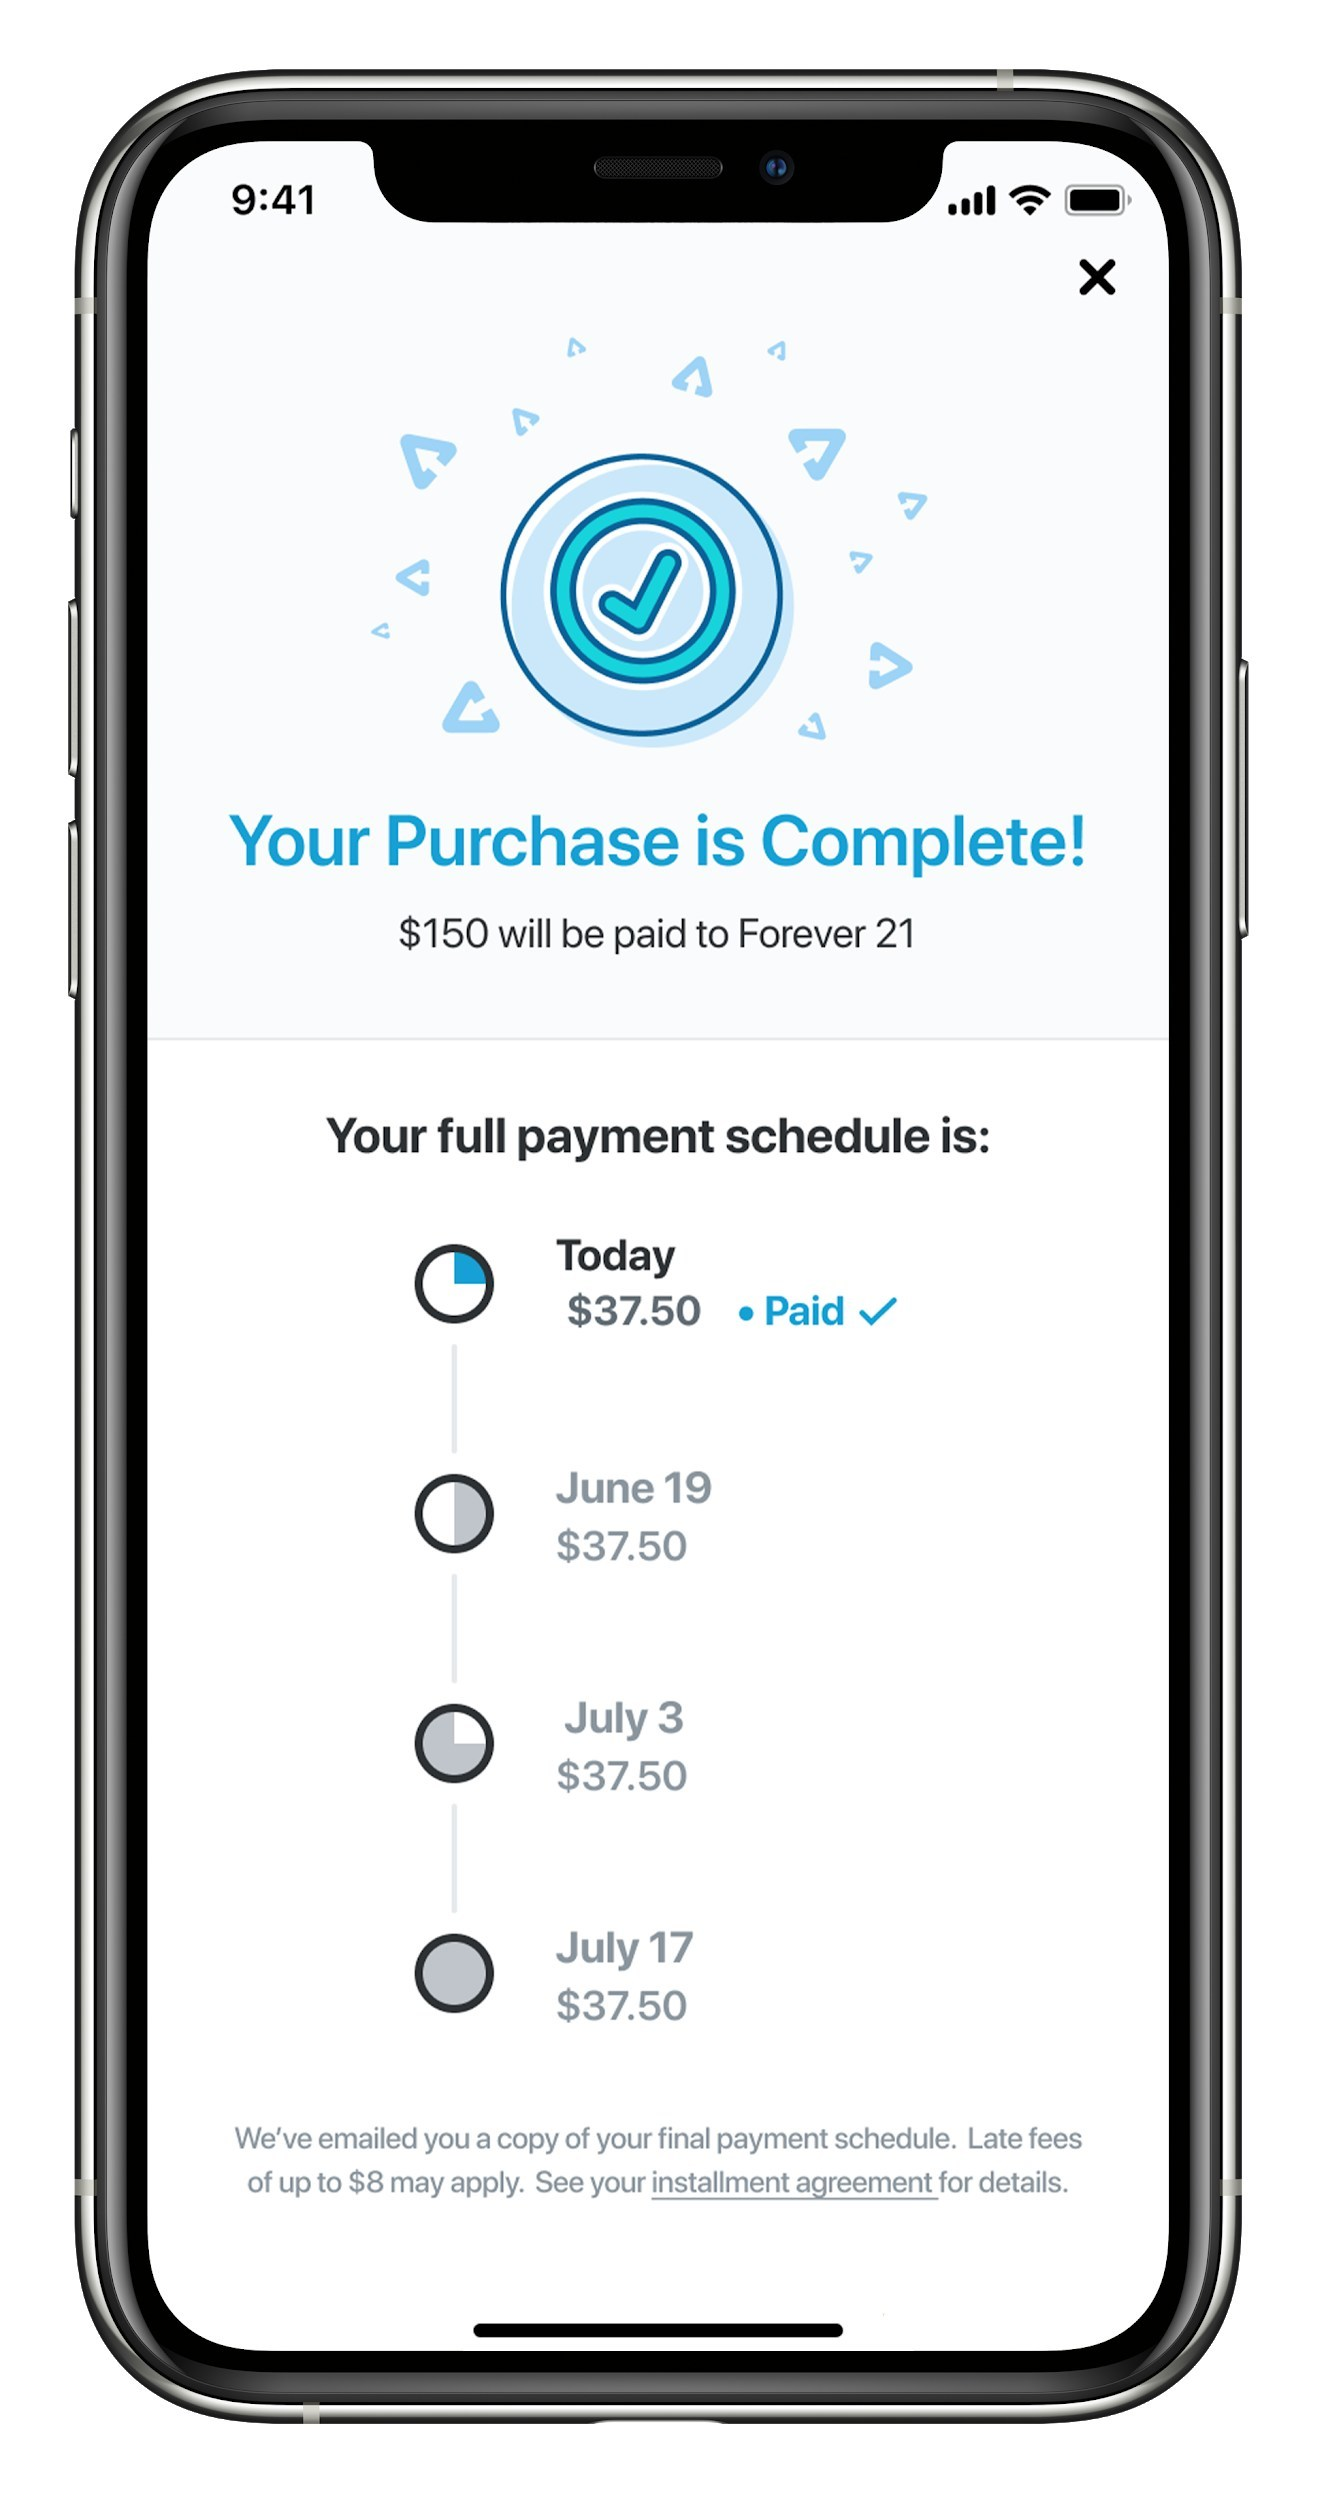 Buy now, pay later platform Afterpay integrated with Google Pay and Apple Pay to enable installment payments in brick-and-mortar stores.